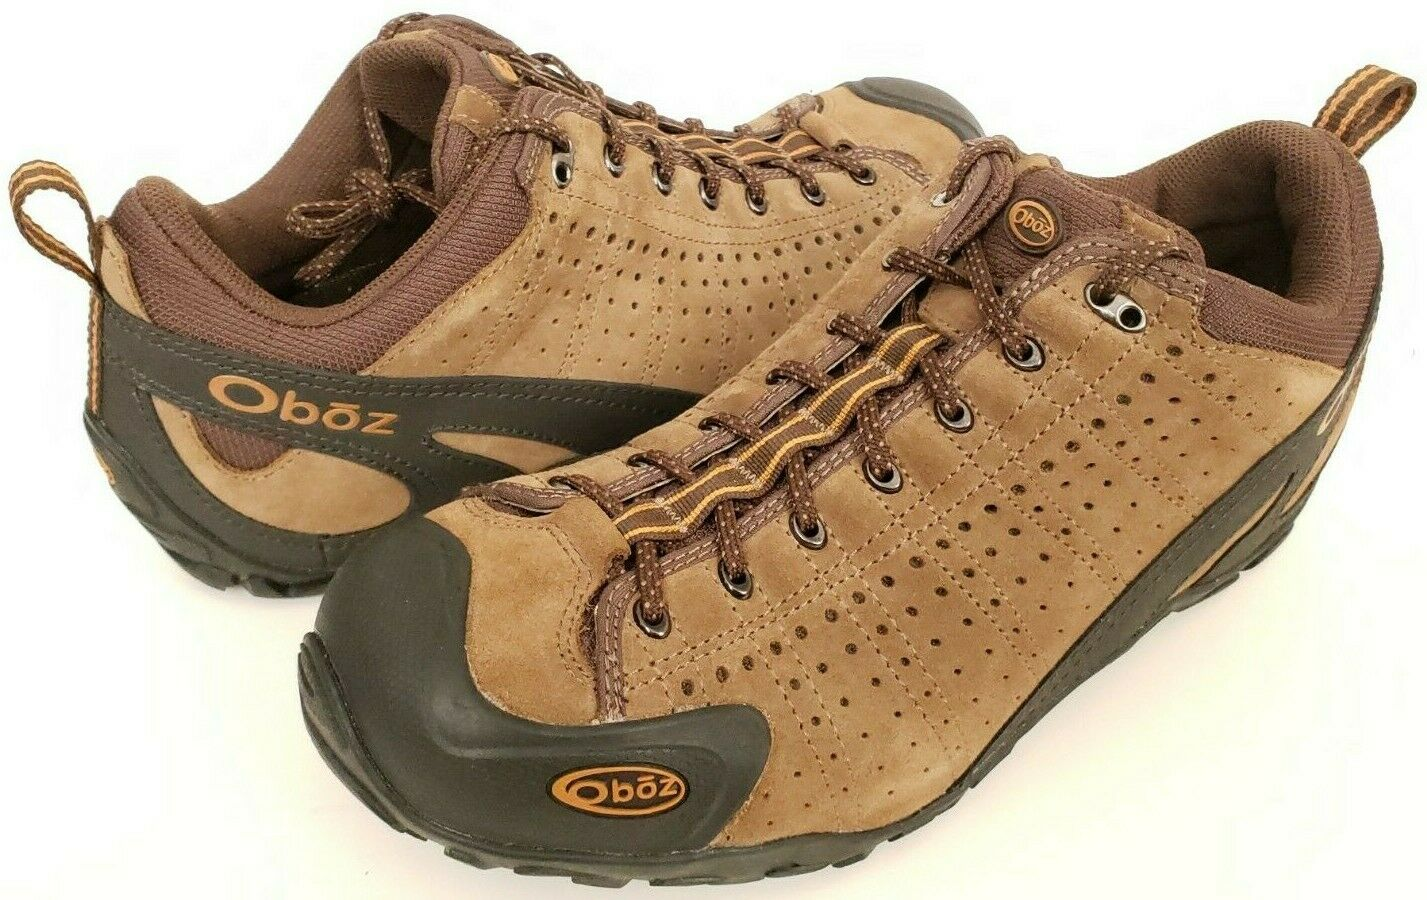 Oboz Teewinot Outdoor Suede Hiking shoes - Mens Size 10.5 M Chestnut Brown 40501